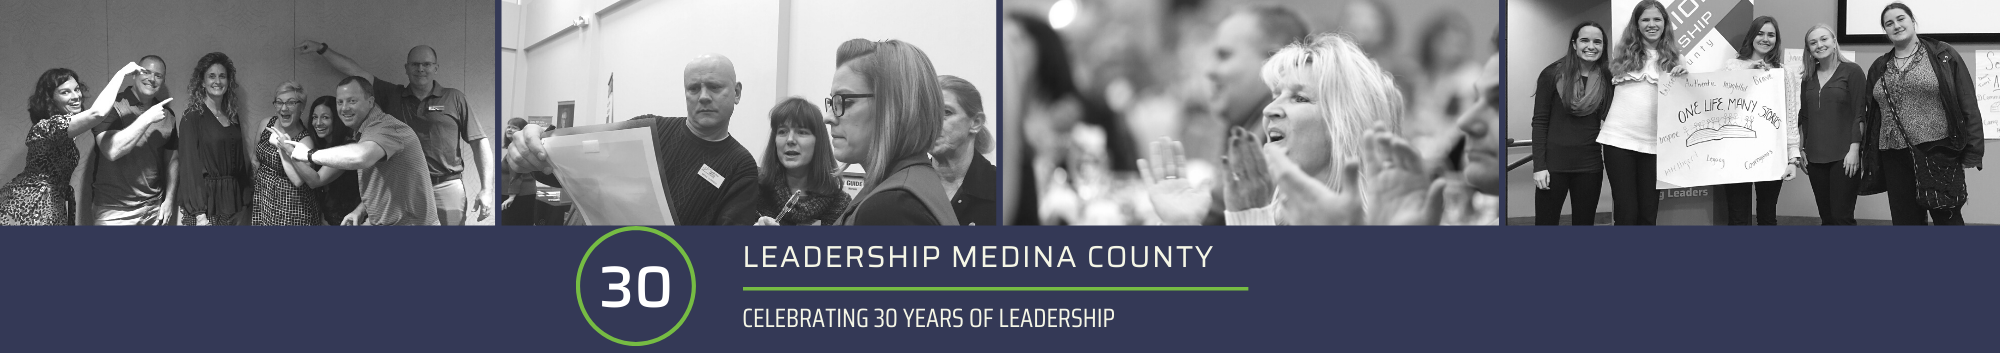 Leadership Medina County